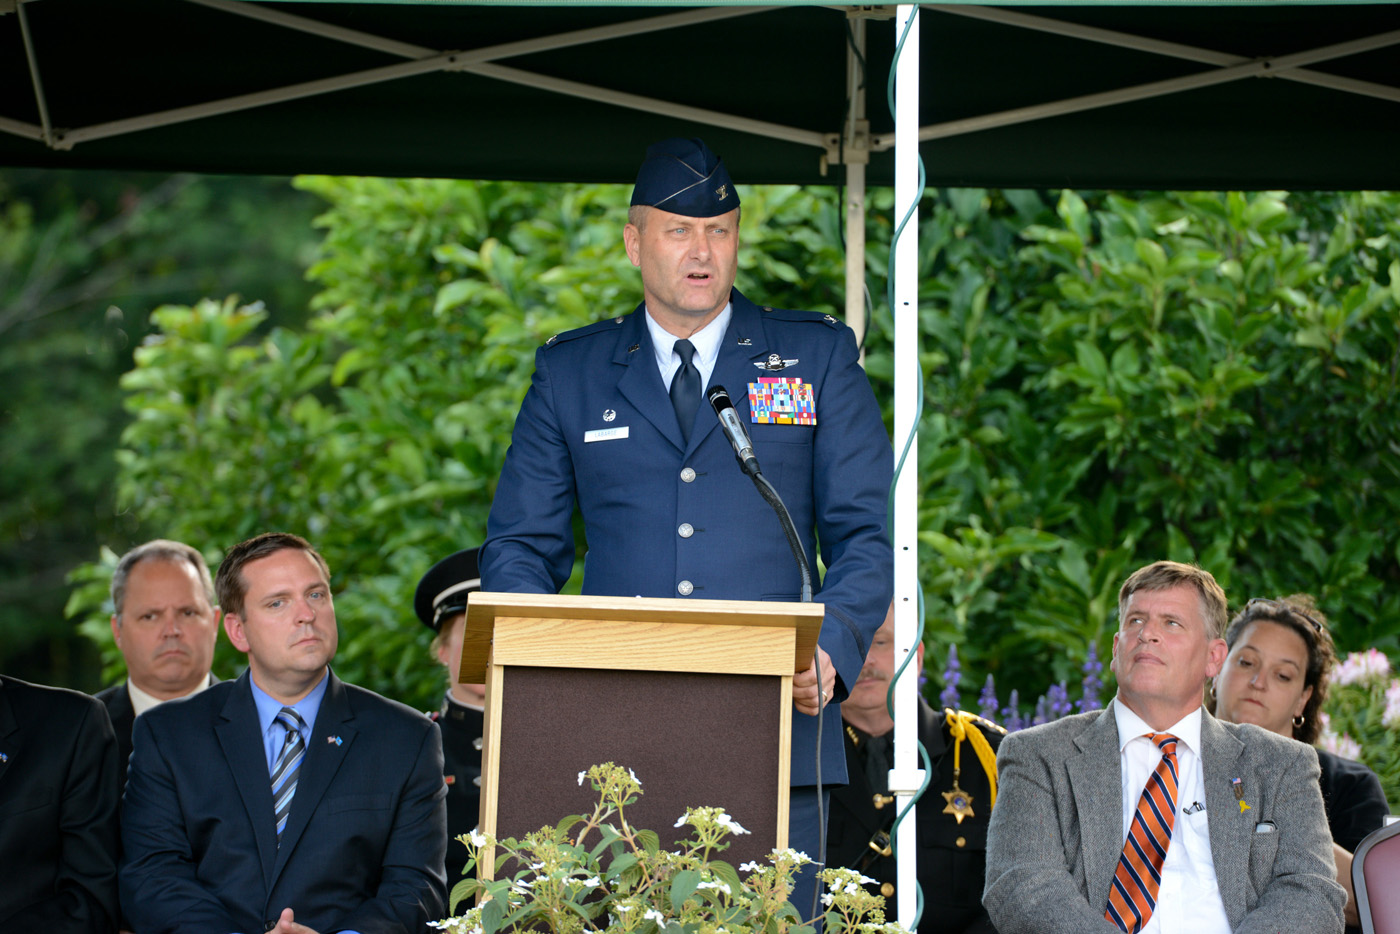 U.S Air Force Col Timothy J. LaBarge, commander 105 Airlift Wing, guest speaker at the Patriot Day, September 11th Remembrance ceremony held at the Orange County Arboretum, Thomas Bull Memorial Park, Montgomery, New York, Sept. 11, 2014. (U.S. Air Force photo by Tech. Sgt. Michael OHalloran/Released)